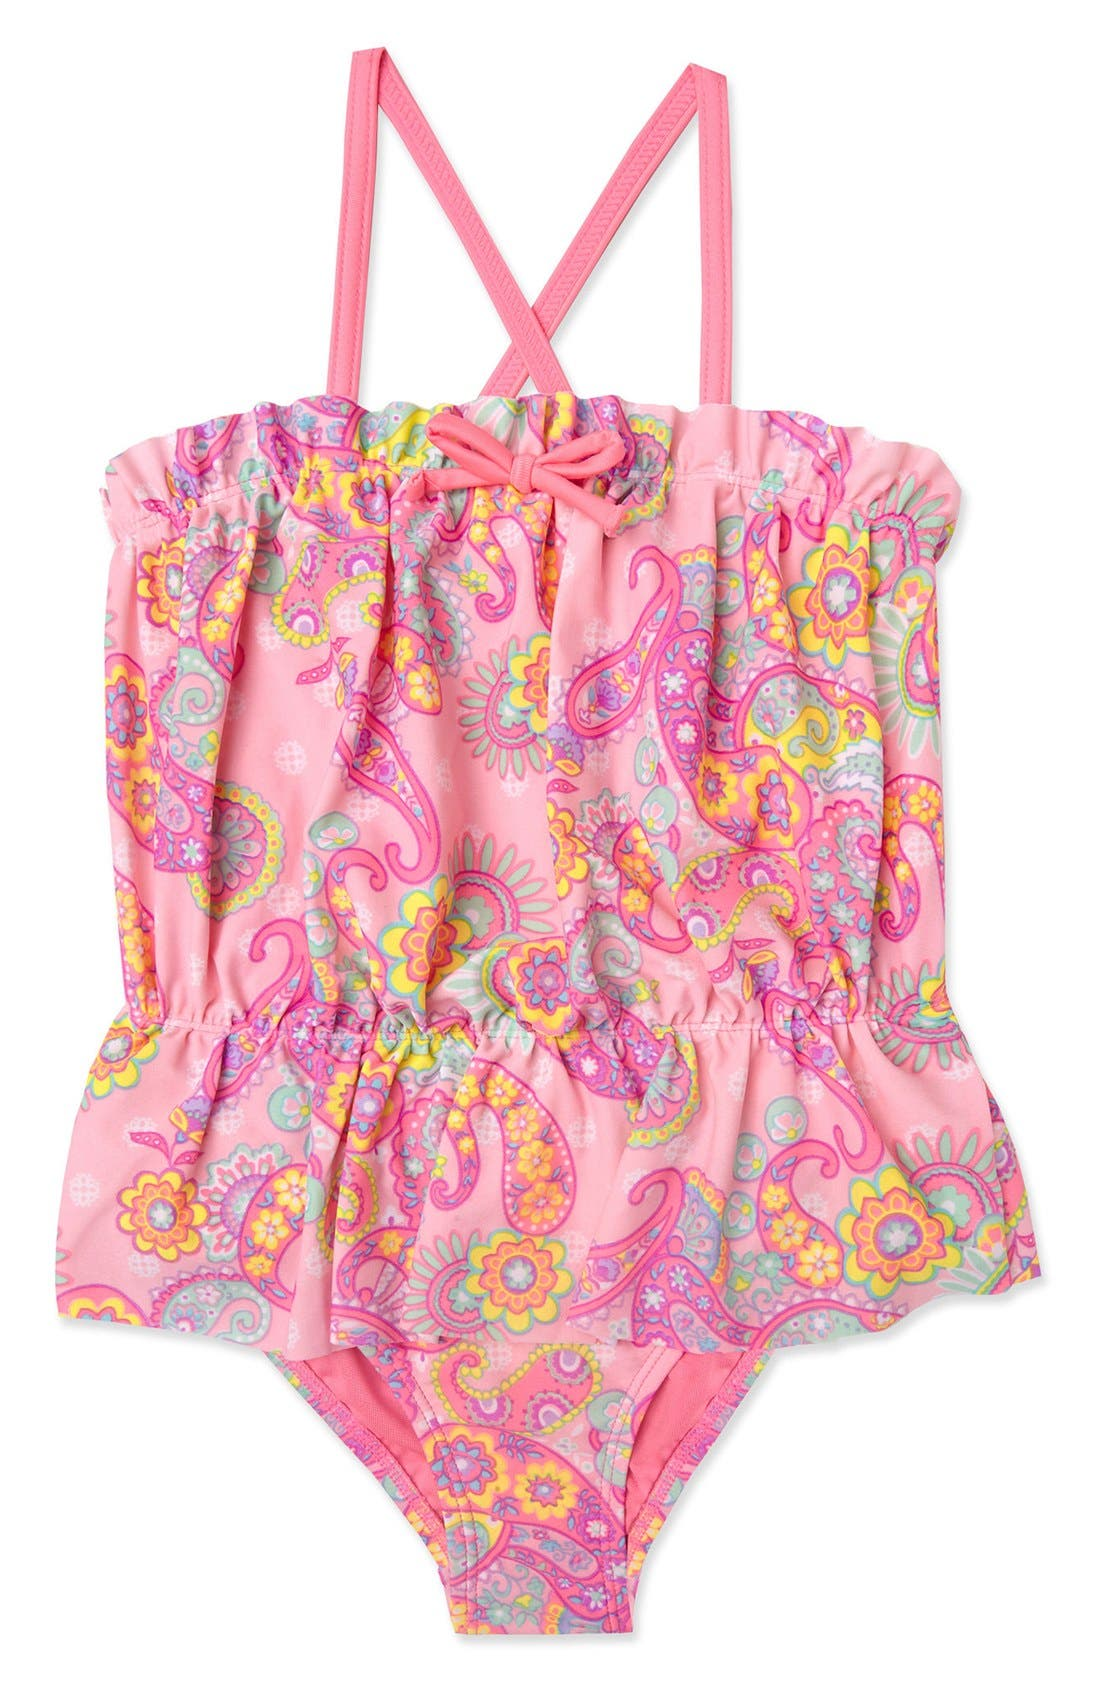 Alternate Image 1 Selected - Hula Star 'Enchanted Paisley' One-Piece Swimsuit (Toddler Girls & Little Girls)